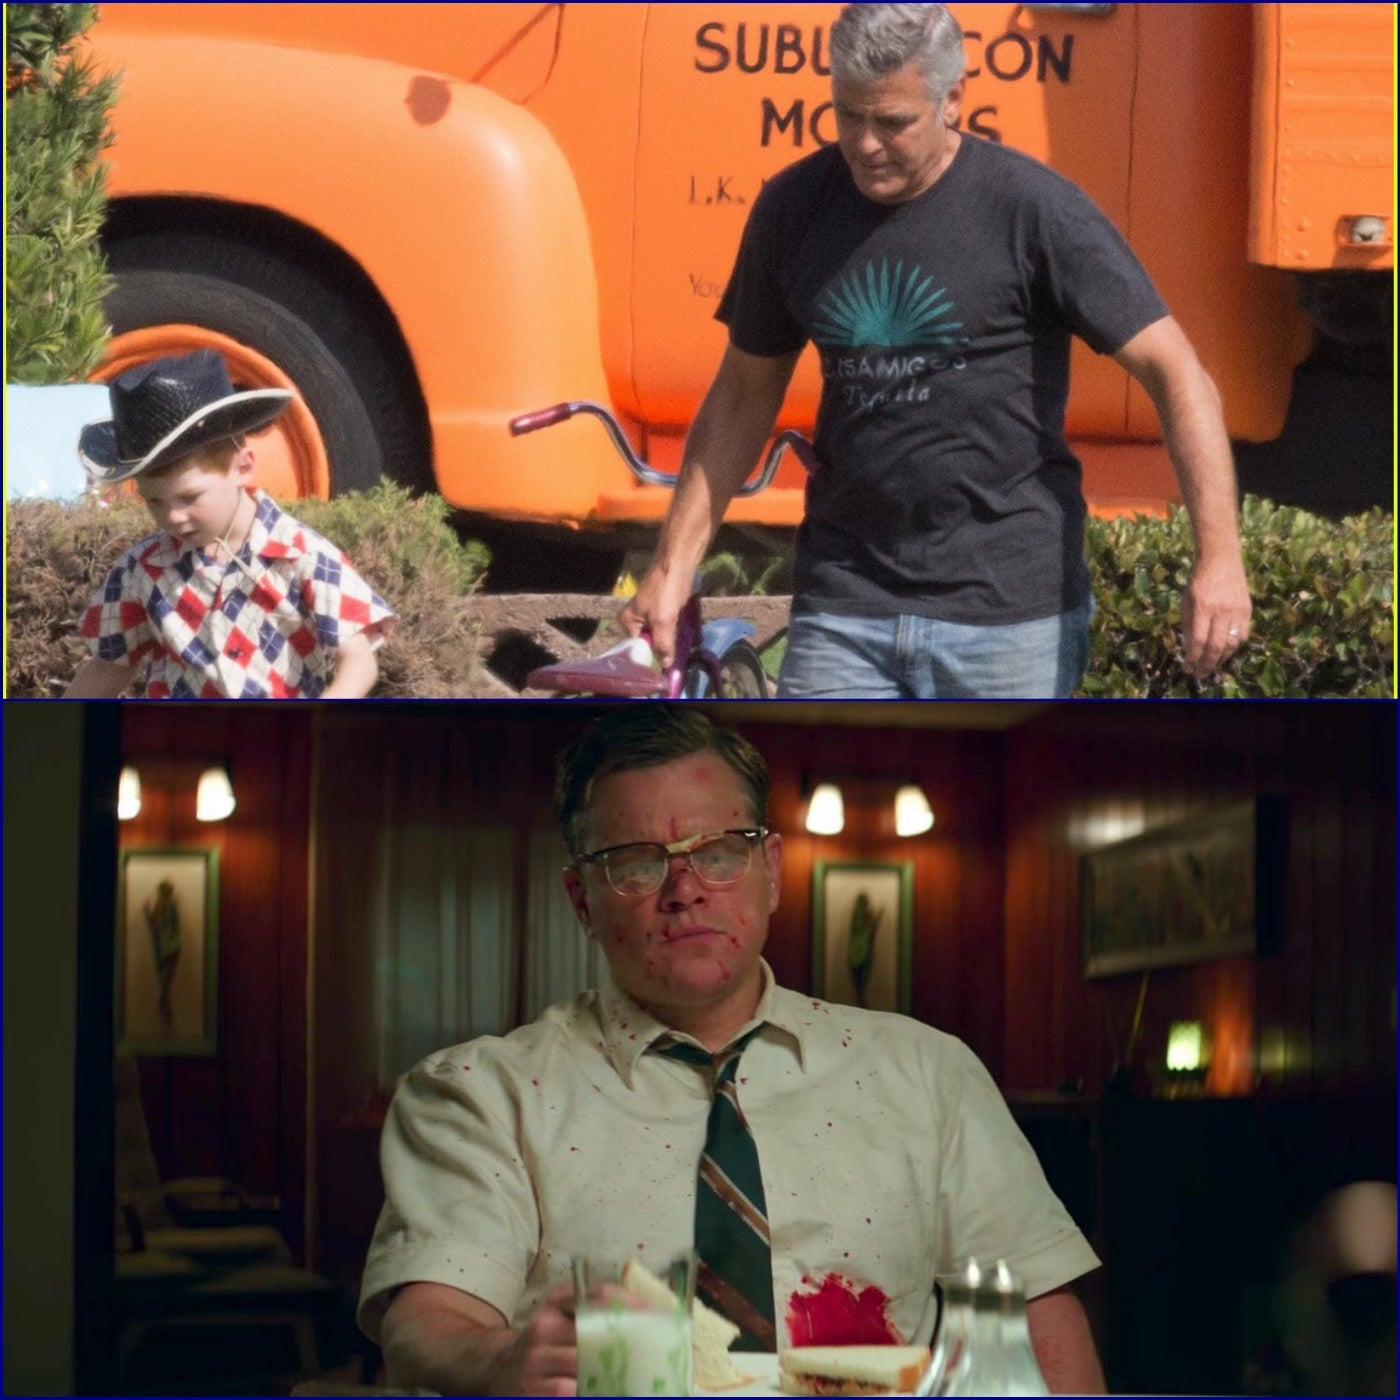 George Clooney on set of Suburbicon, Matt Damon in a scene from Suburbicon